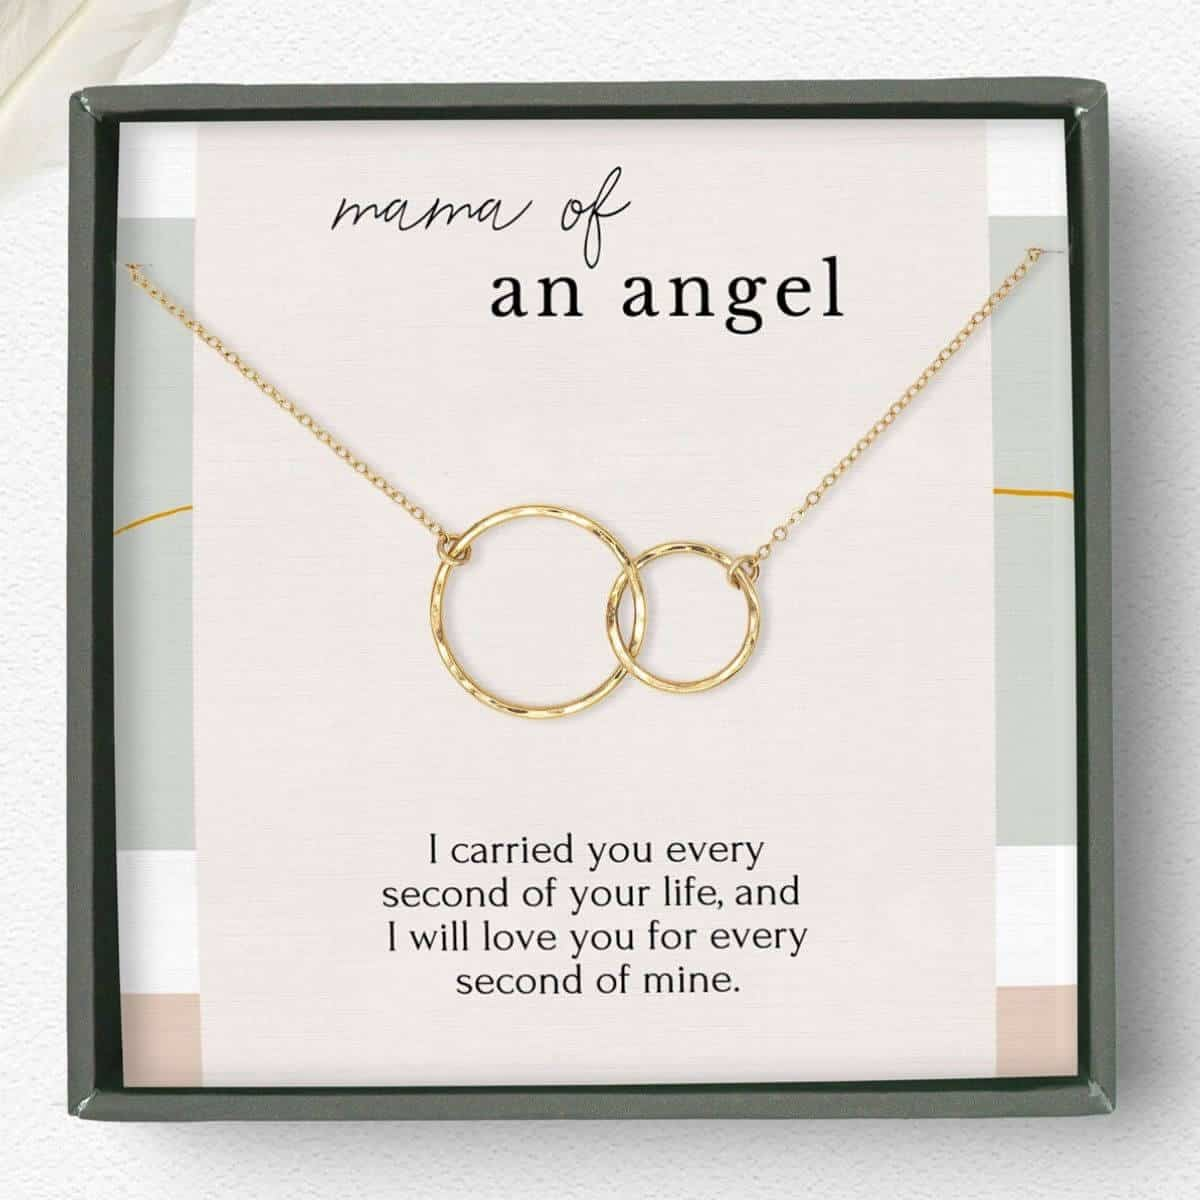 gold necklace with one larger circle looped through a smaller circle on a card that says mom of an angel